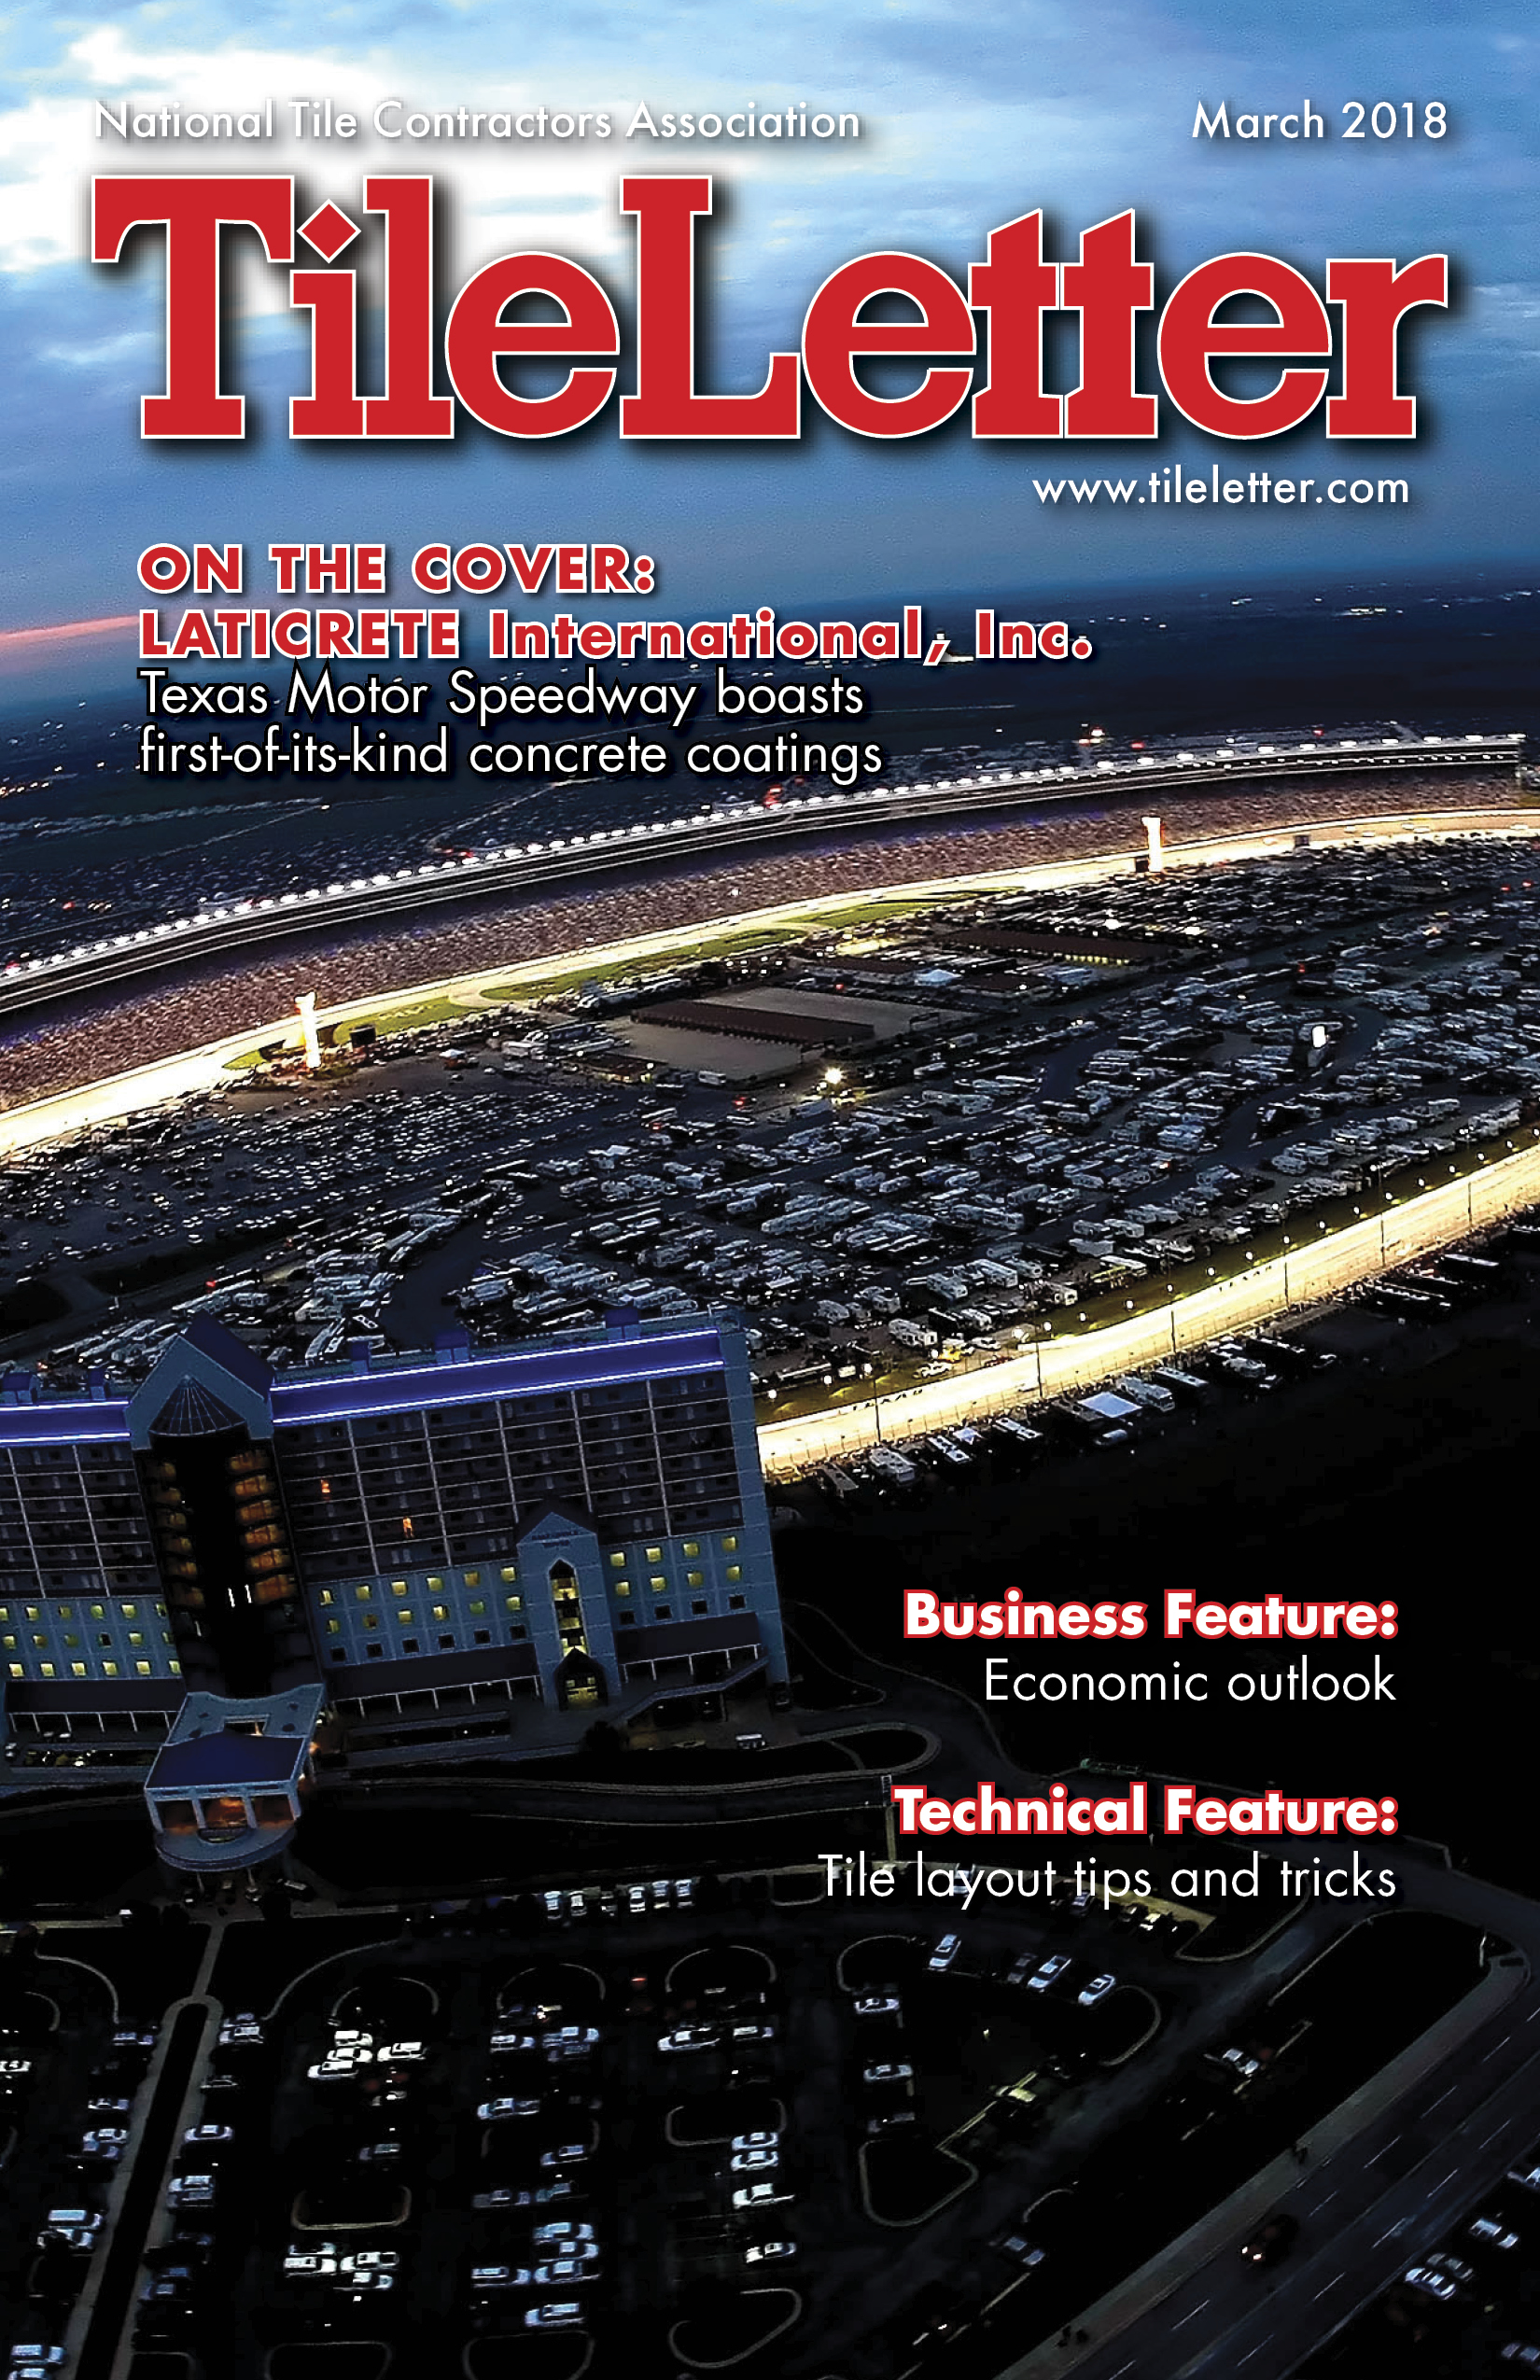 Features tileletter the texas motor speedway located in fort worth texas is home to several popular nascarevents each year with the ability to fit four dallas cowboys nvjuhfo Images